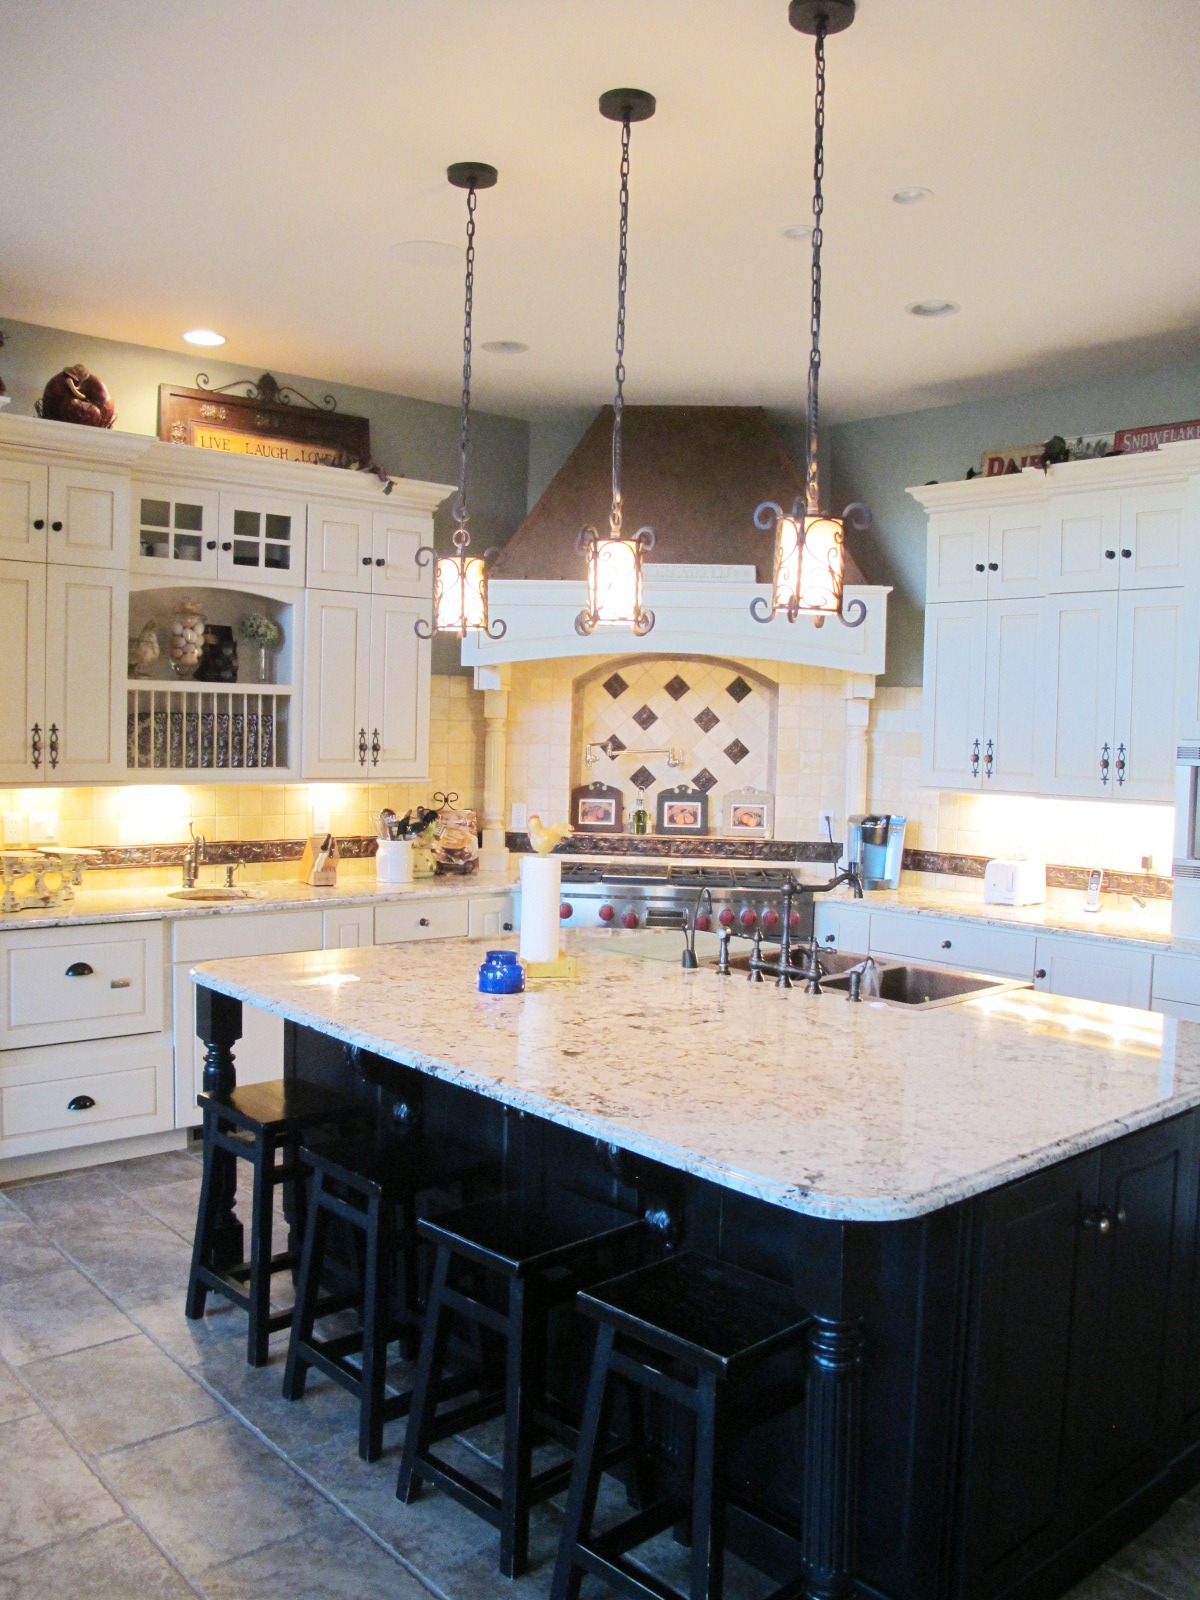 Cococozy blog stacy nance interiors - Kitchen with copper accents ...